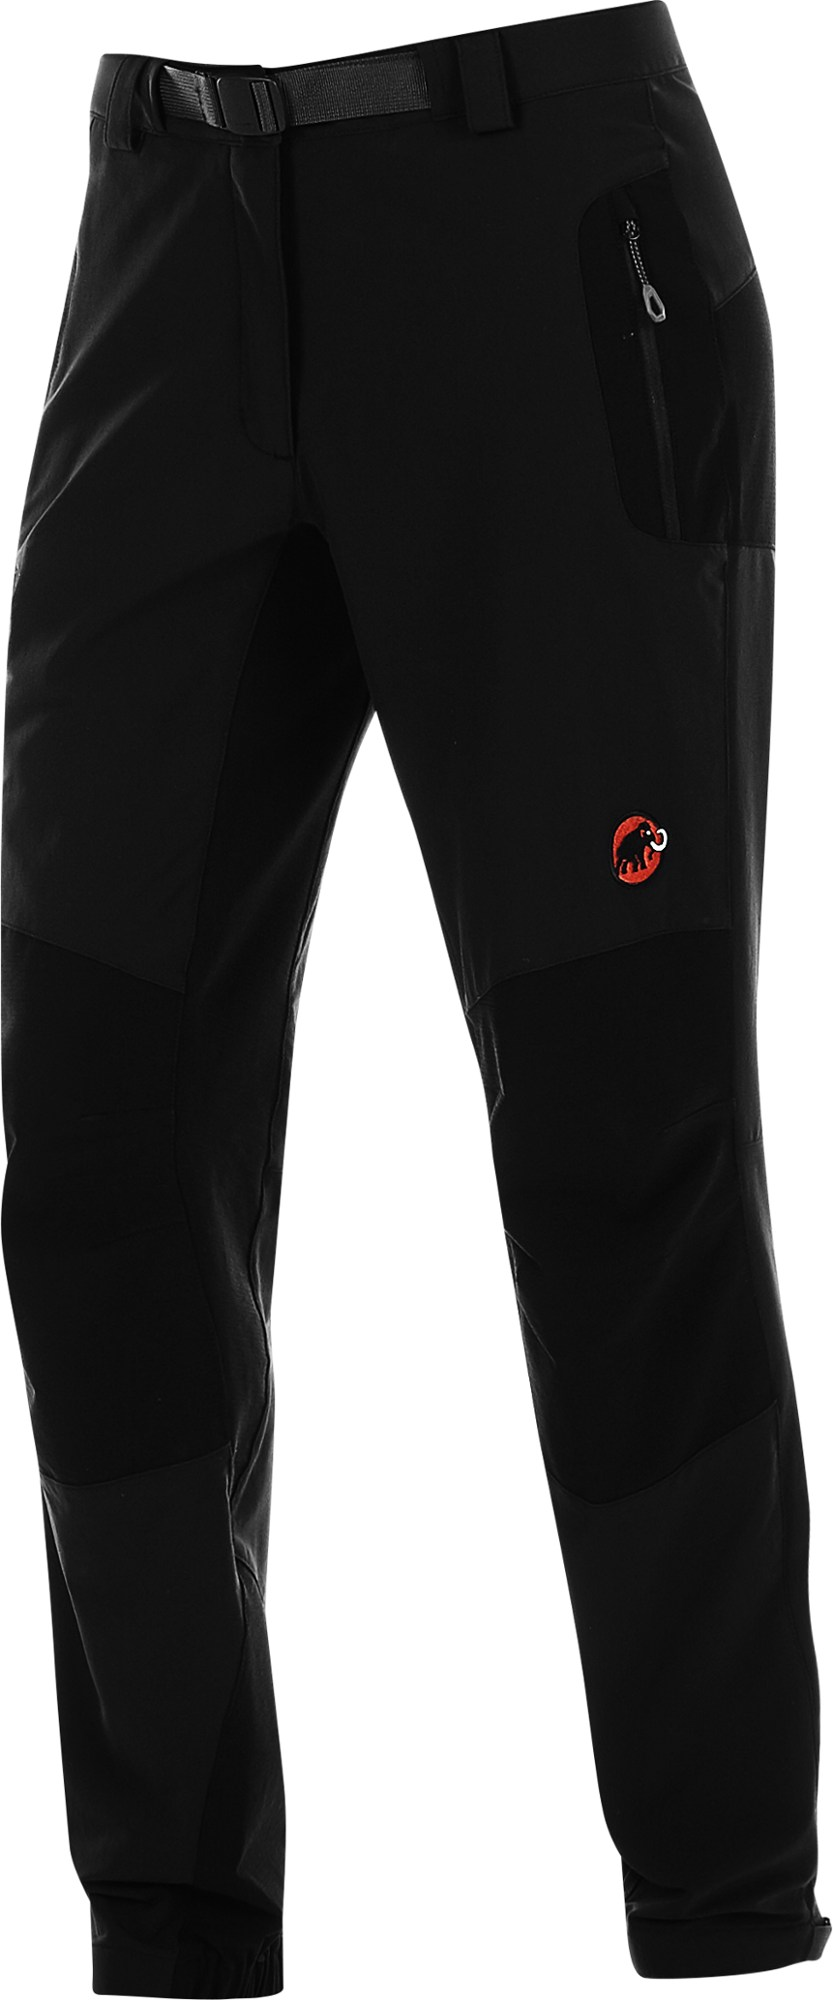 Mammut Courmayeur Soft-Shell Pants - Men's